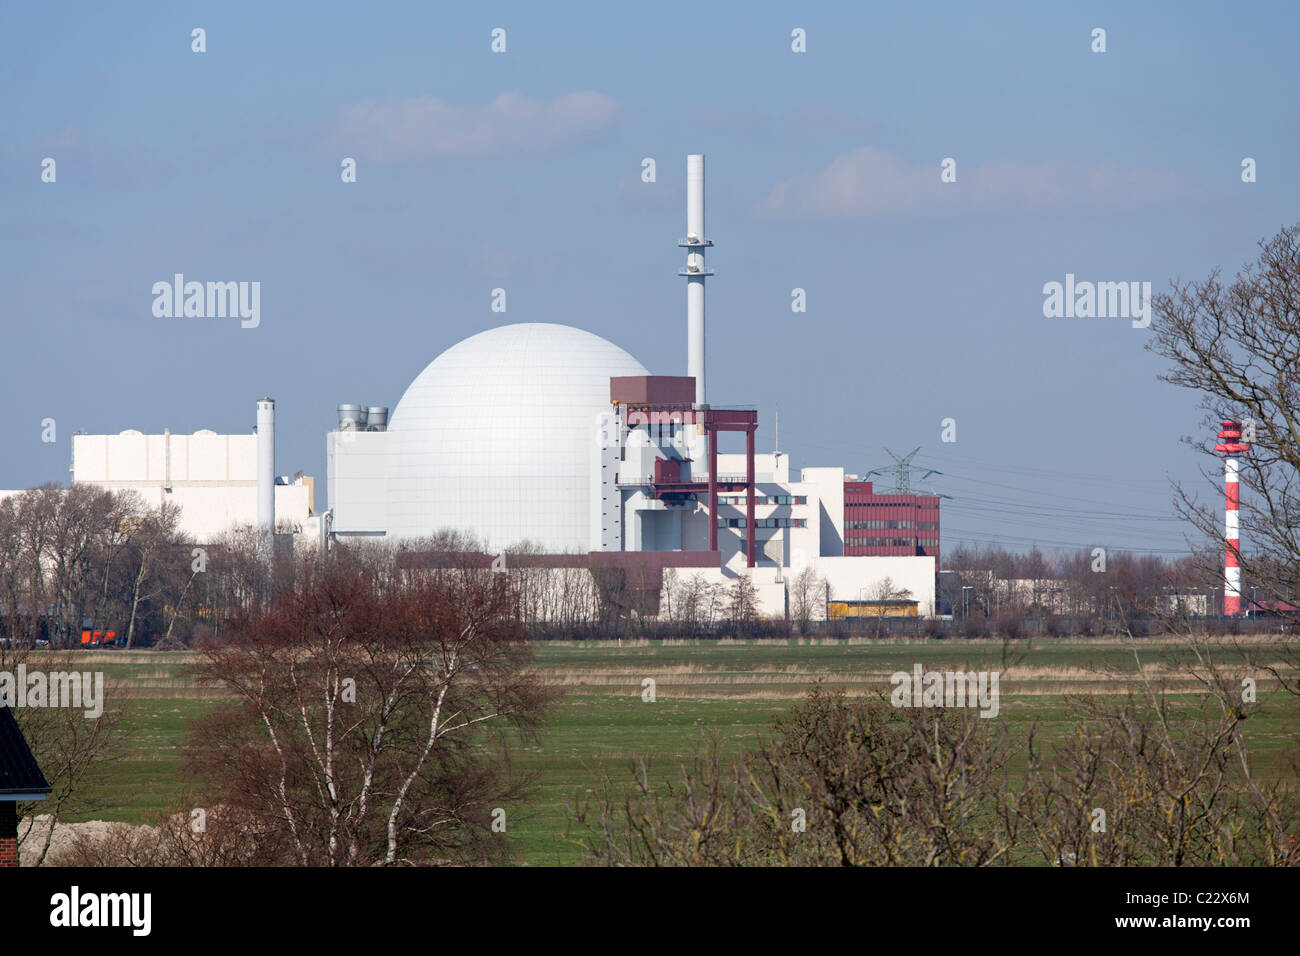 nuclear power station Brokdorf, Schleswig-Holstein, Germany - Stock Image